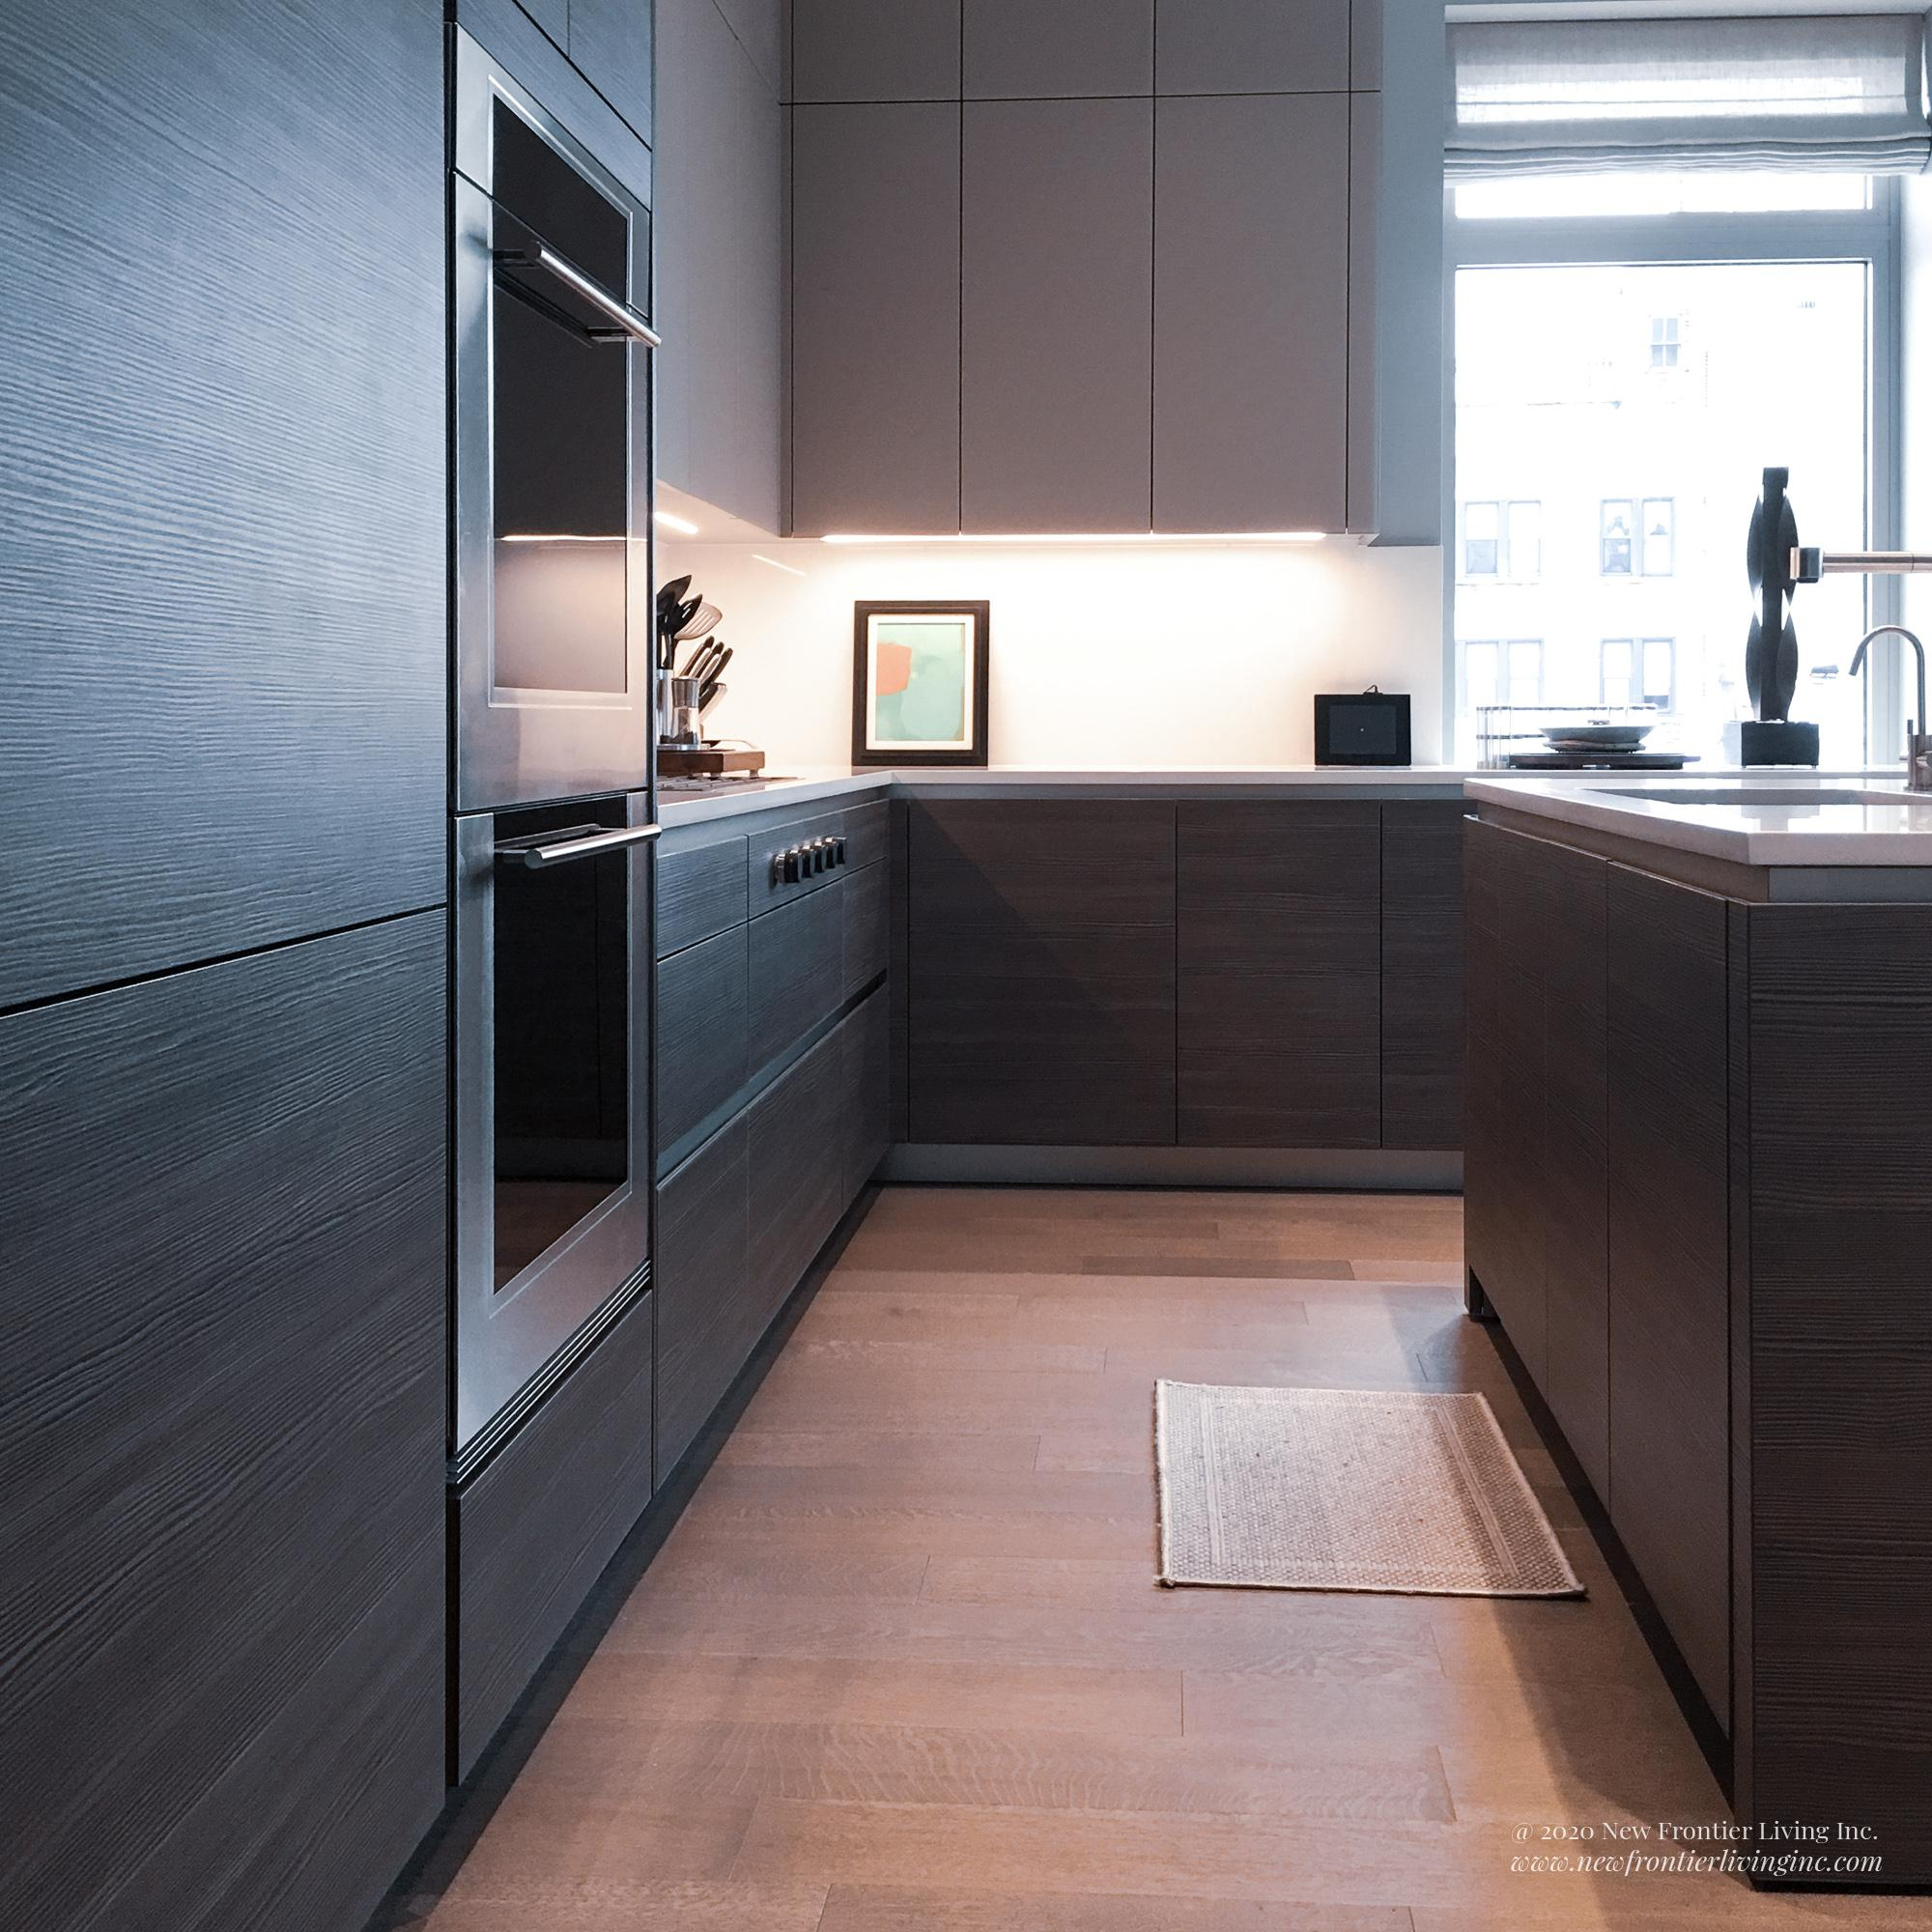 Black kitchen bottom cabinetry without handles with wooden floor